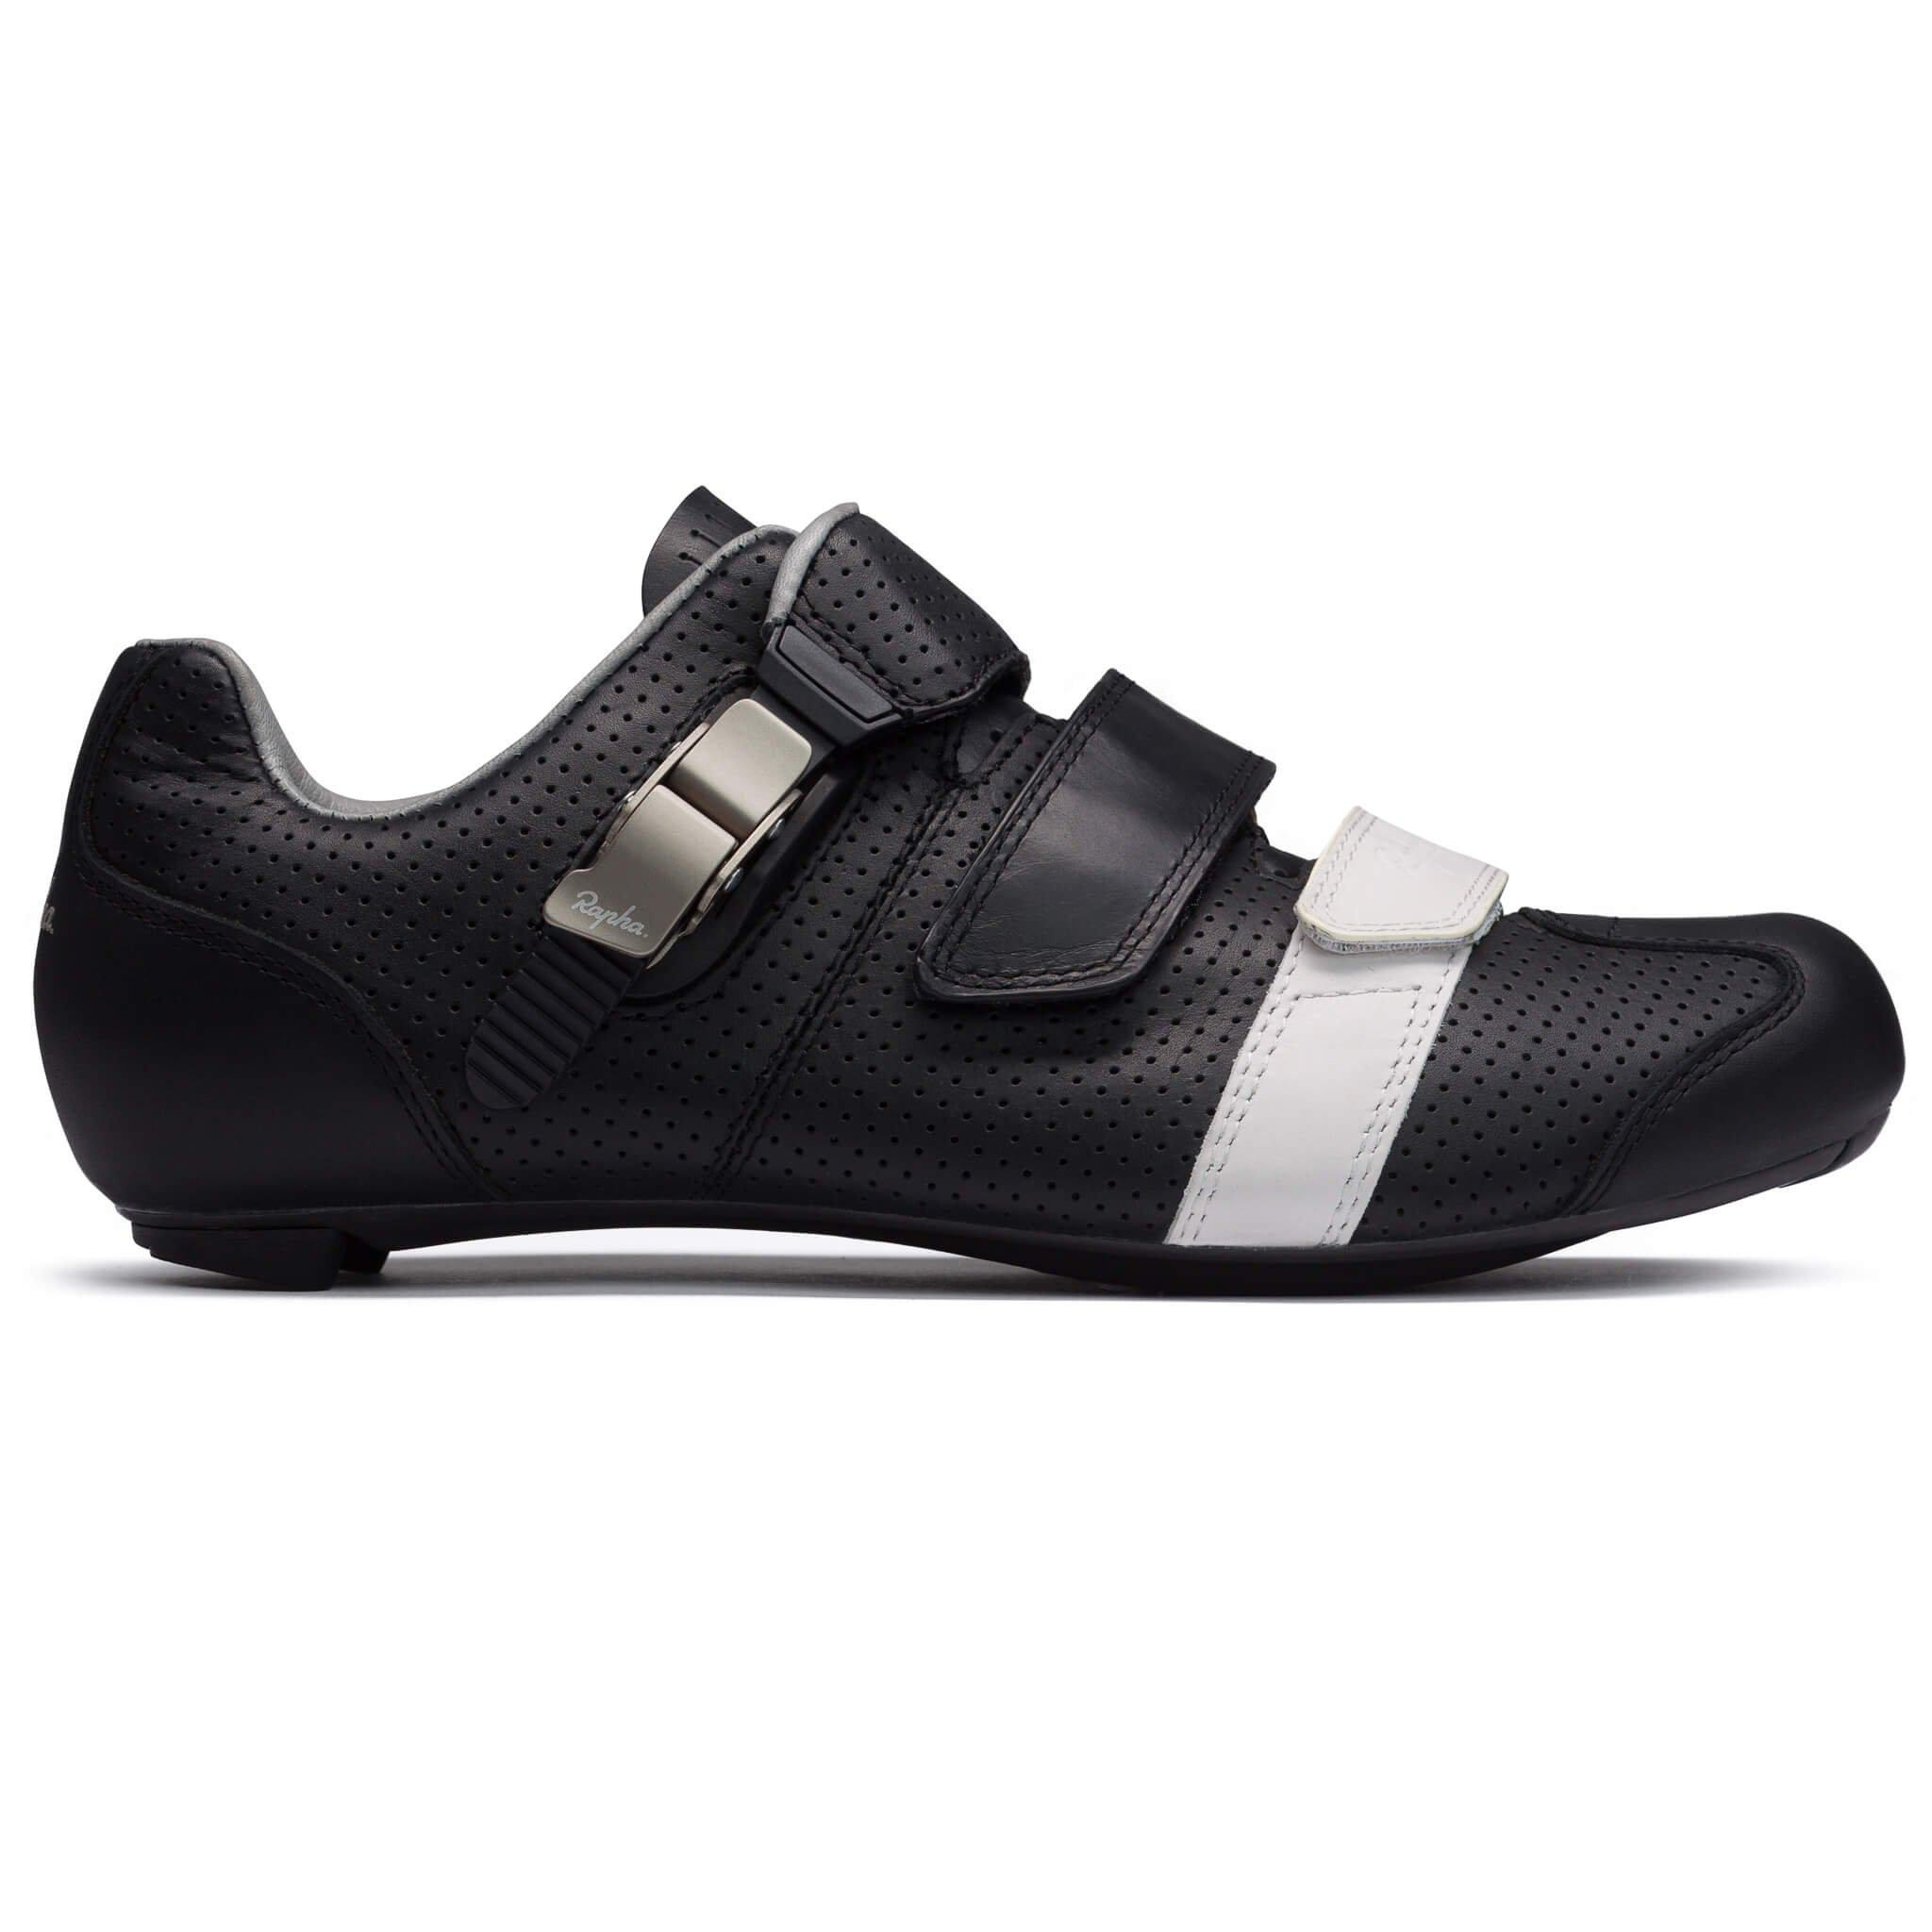 Rapha GT Shoes | Shoes and overlays